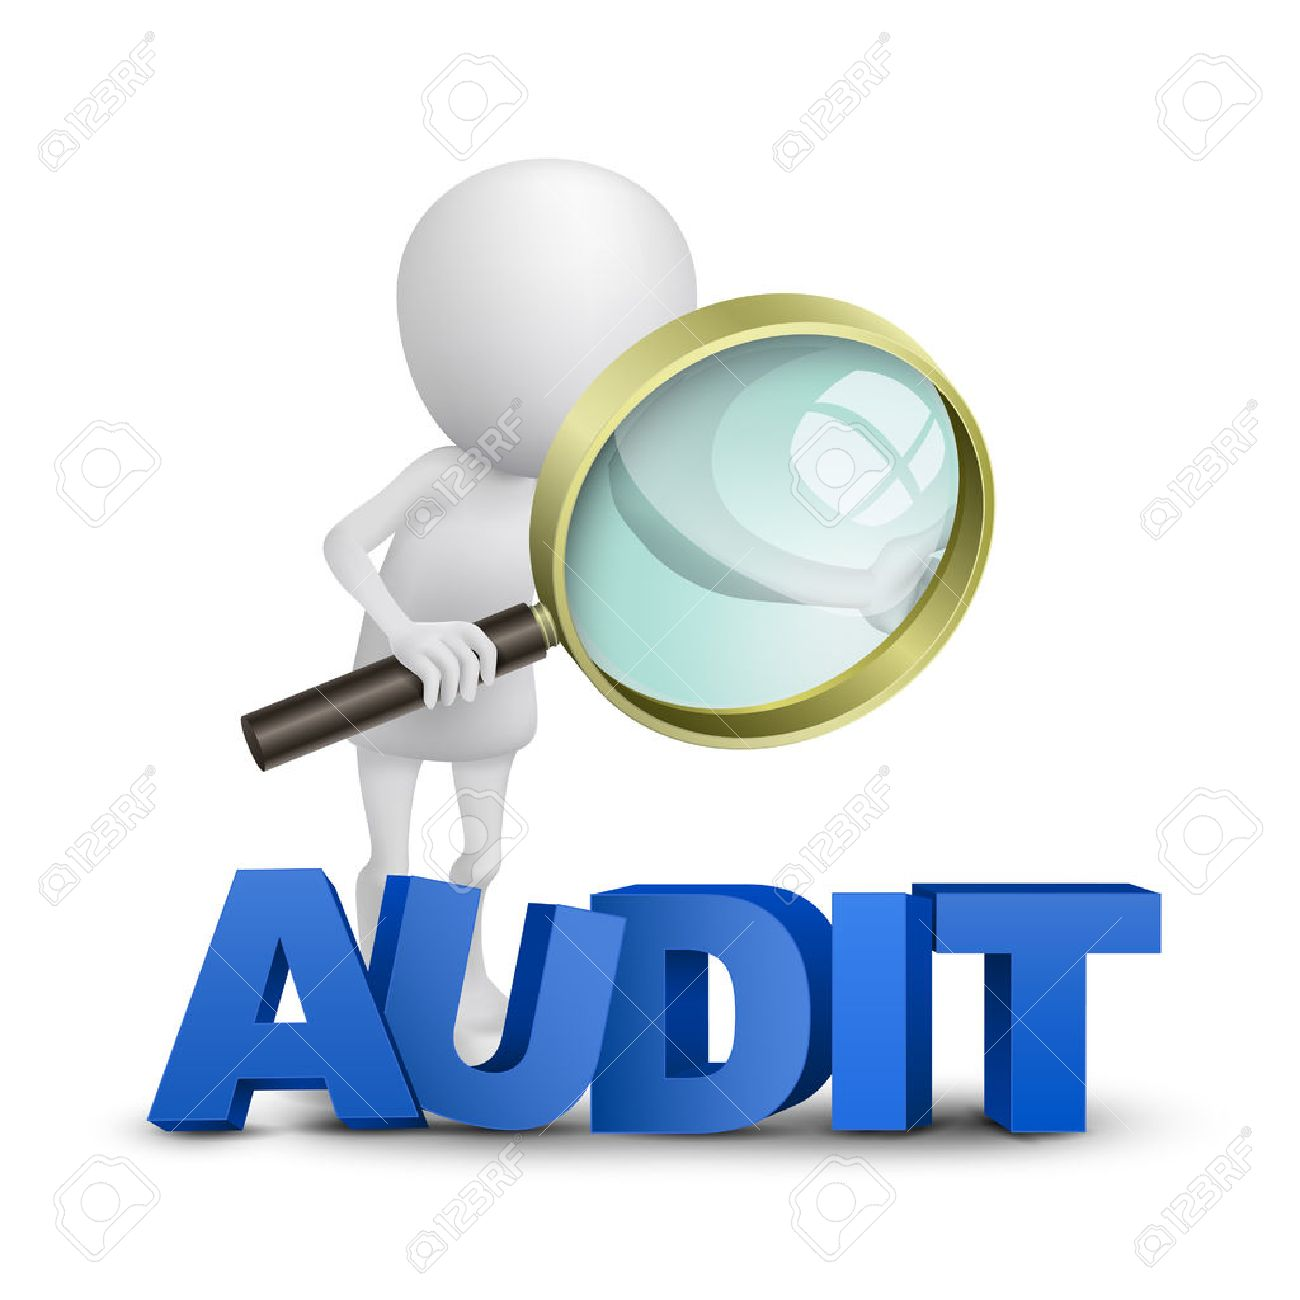 Auditor clipart 9 » Clipart Station.